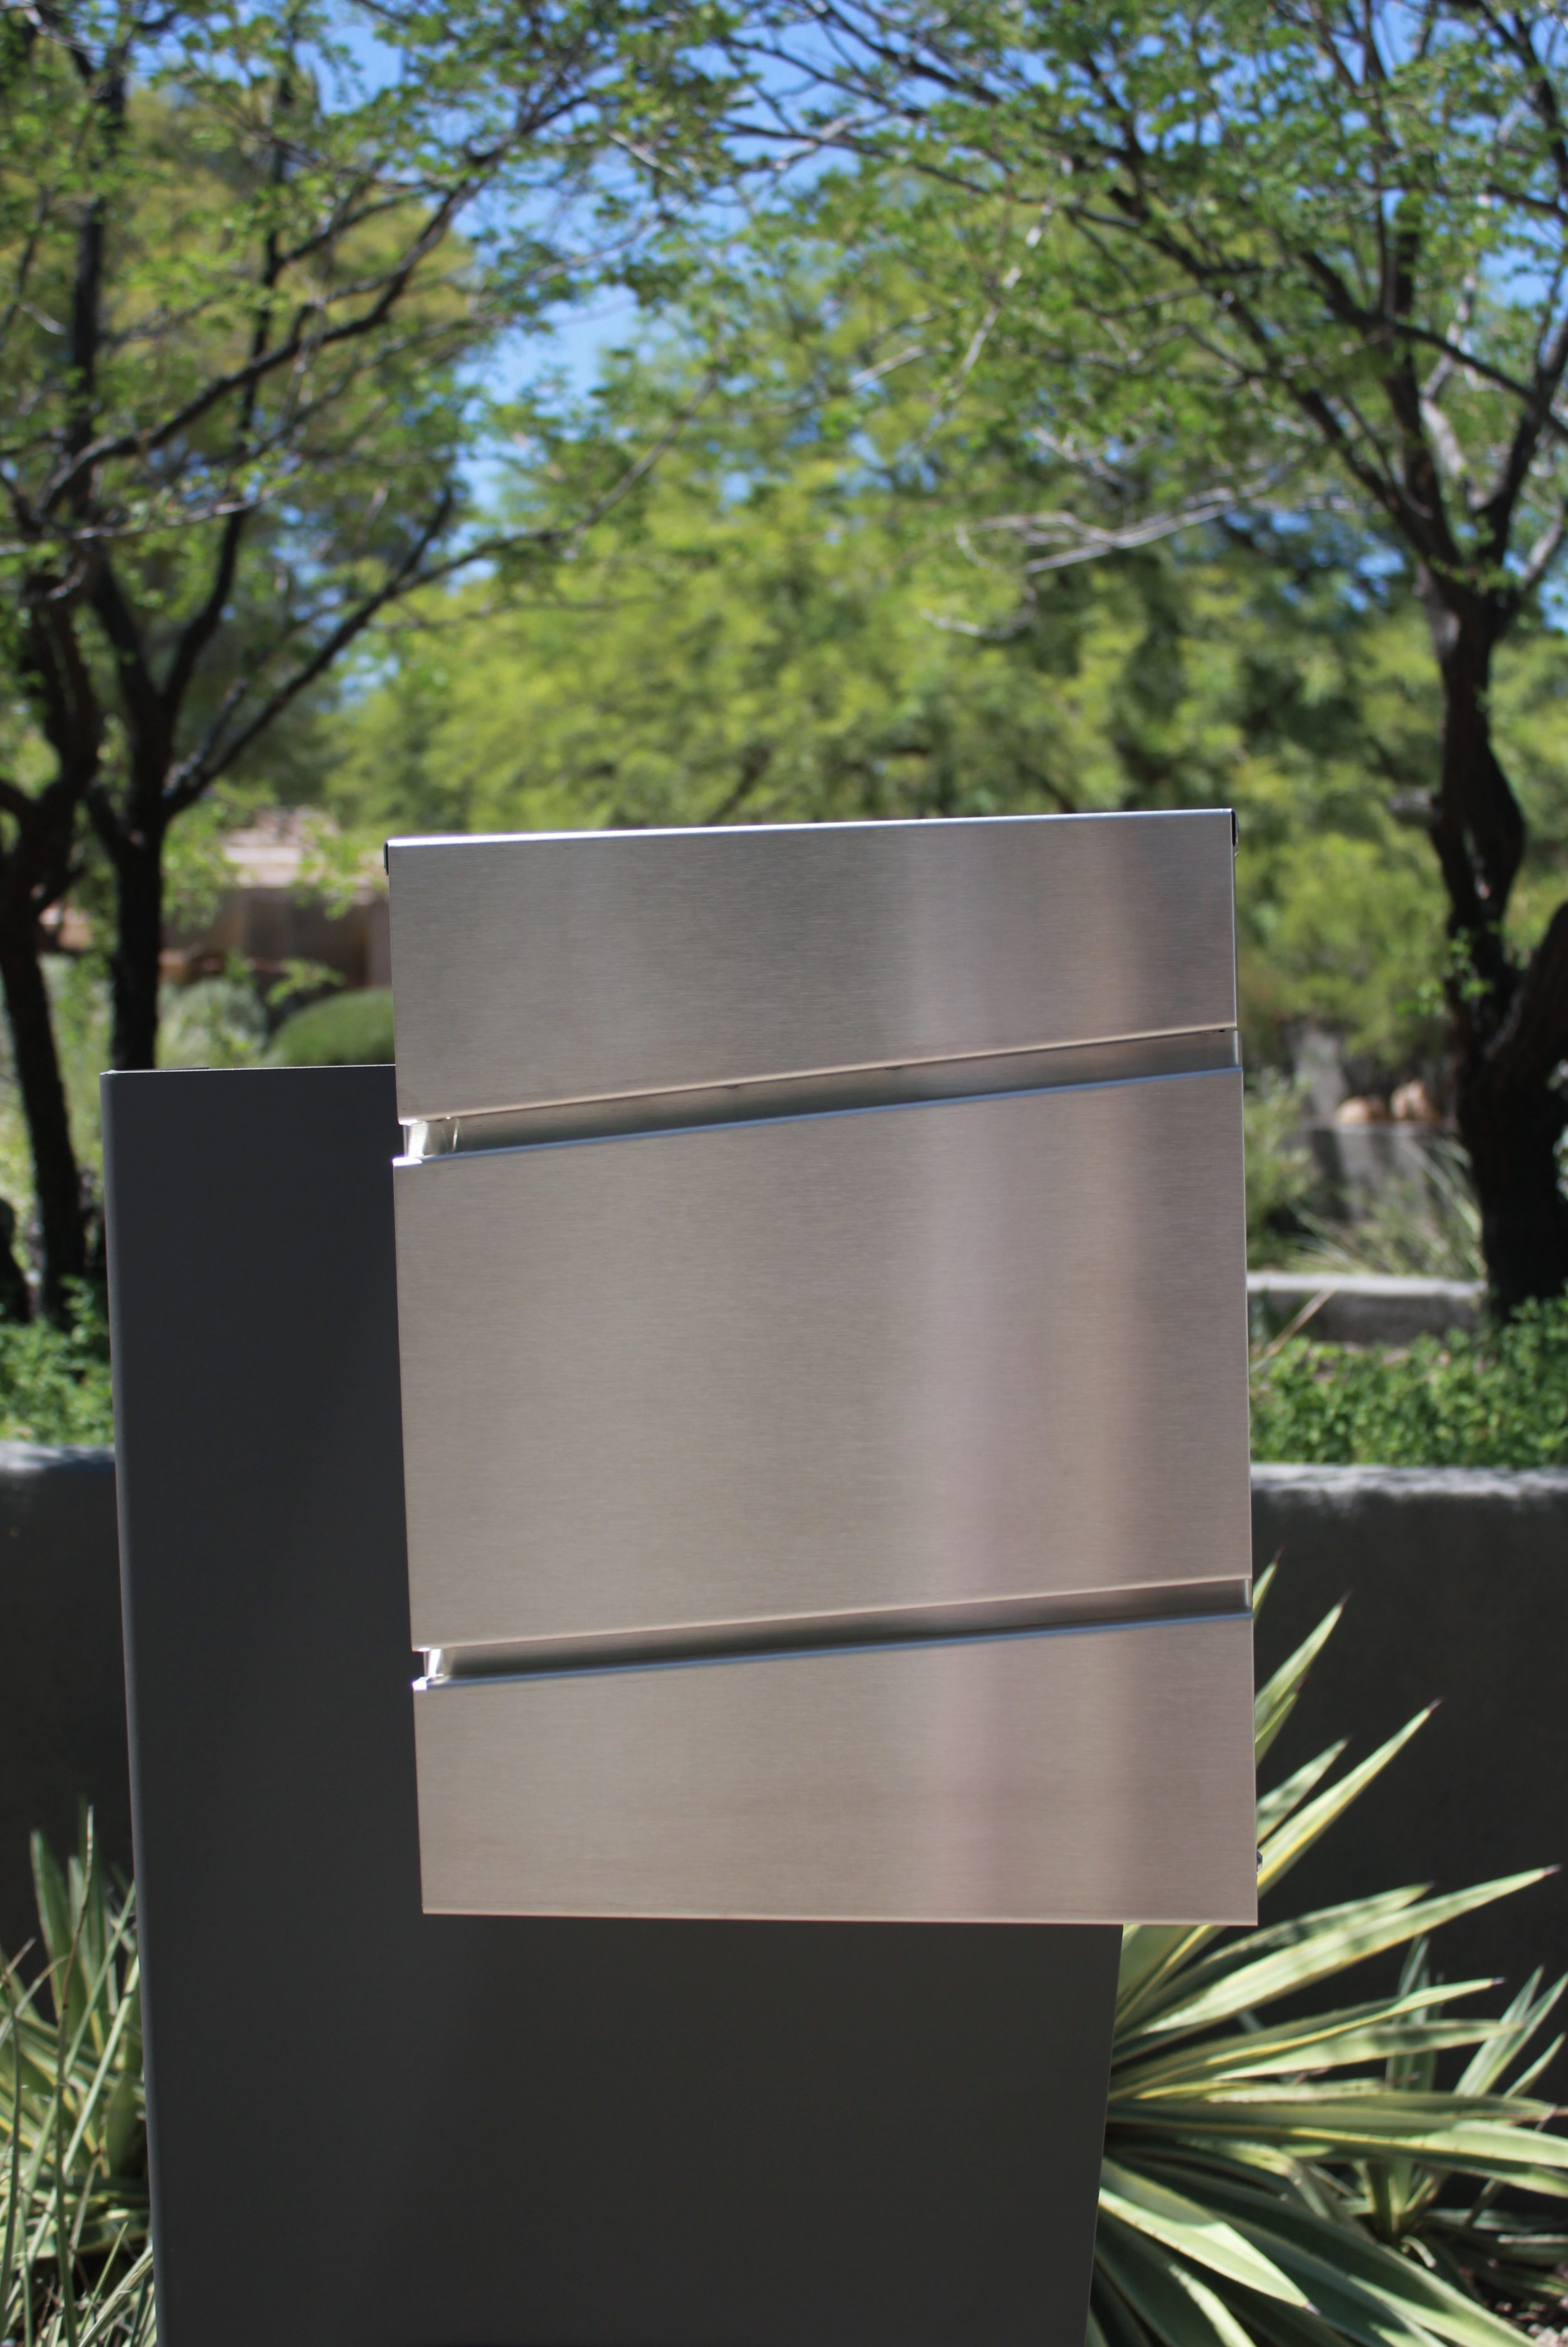 Unique The Metro - Modern Stainless Steel Mailbox, Wall Mounted or Curbside AK68